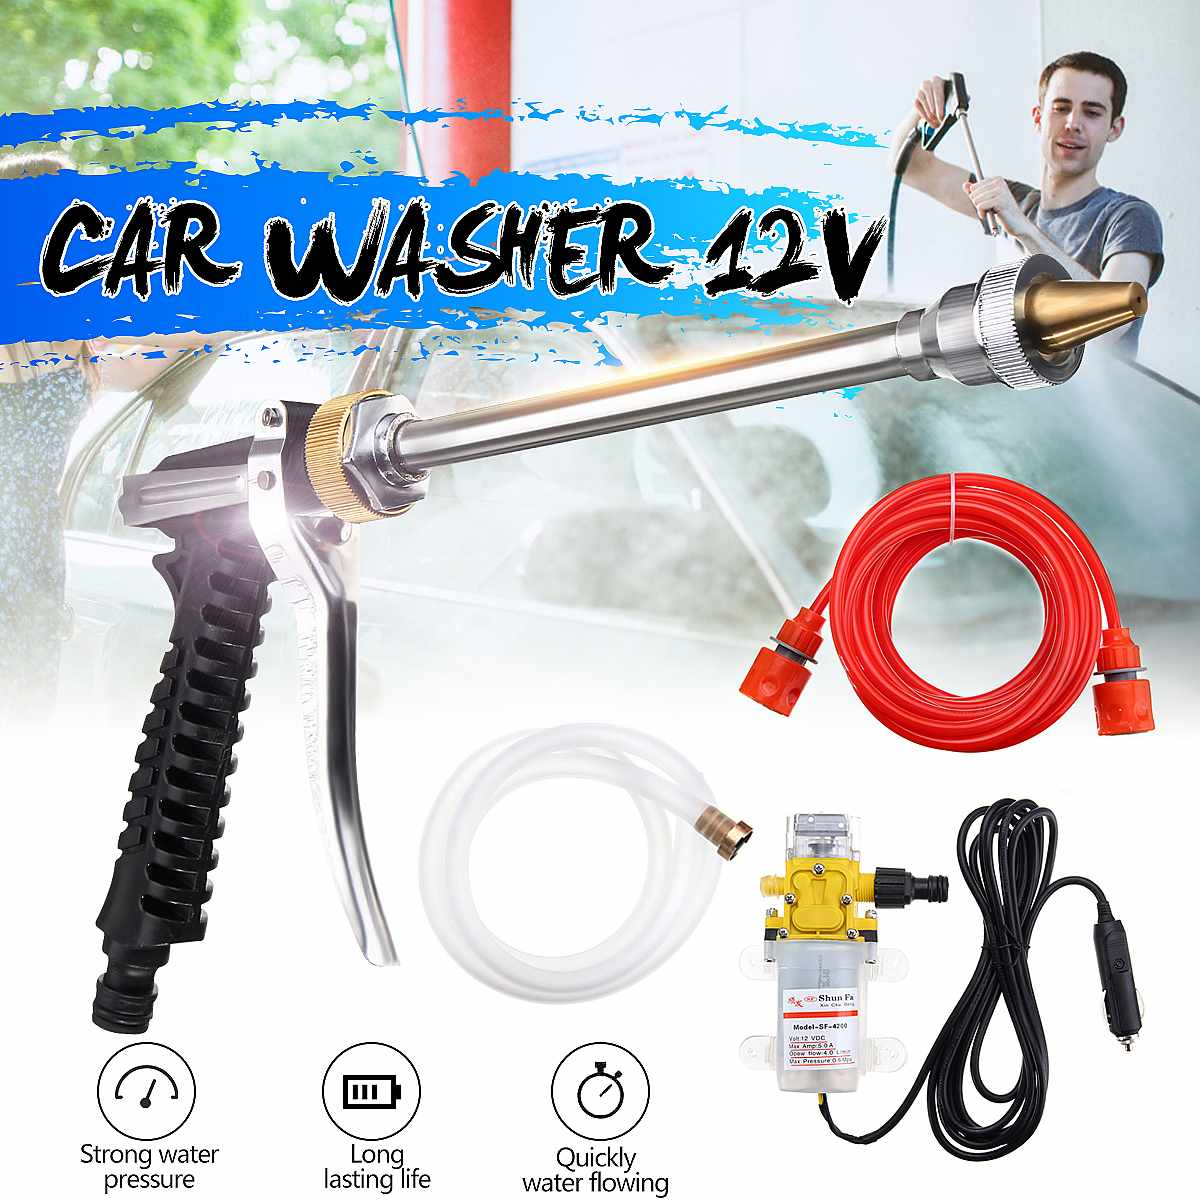 Best 100W 1Set DC 12V 160PSI High Pressure Car Electric Washer Wash Pump Set Portable Auto Washing Machine Kit With Car Charger